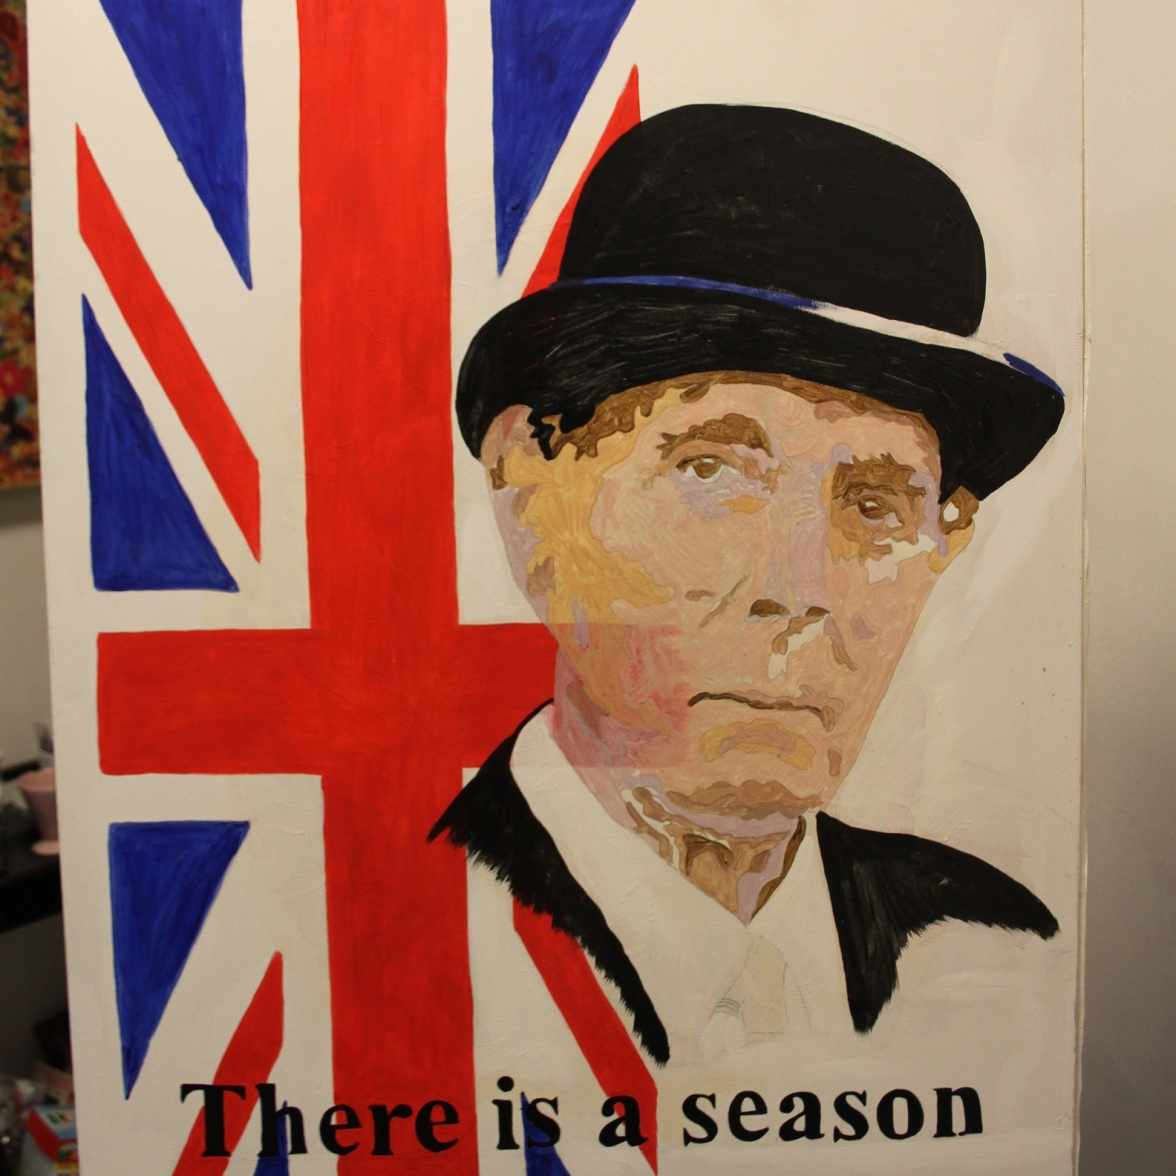 Start of my new painting of Eric Sykes. I will be decoupaging flowers and painting motifs with oil glazes.